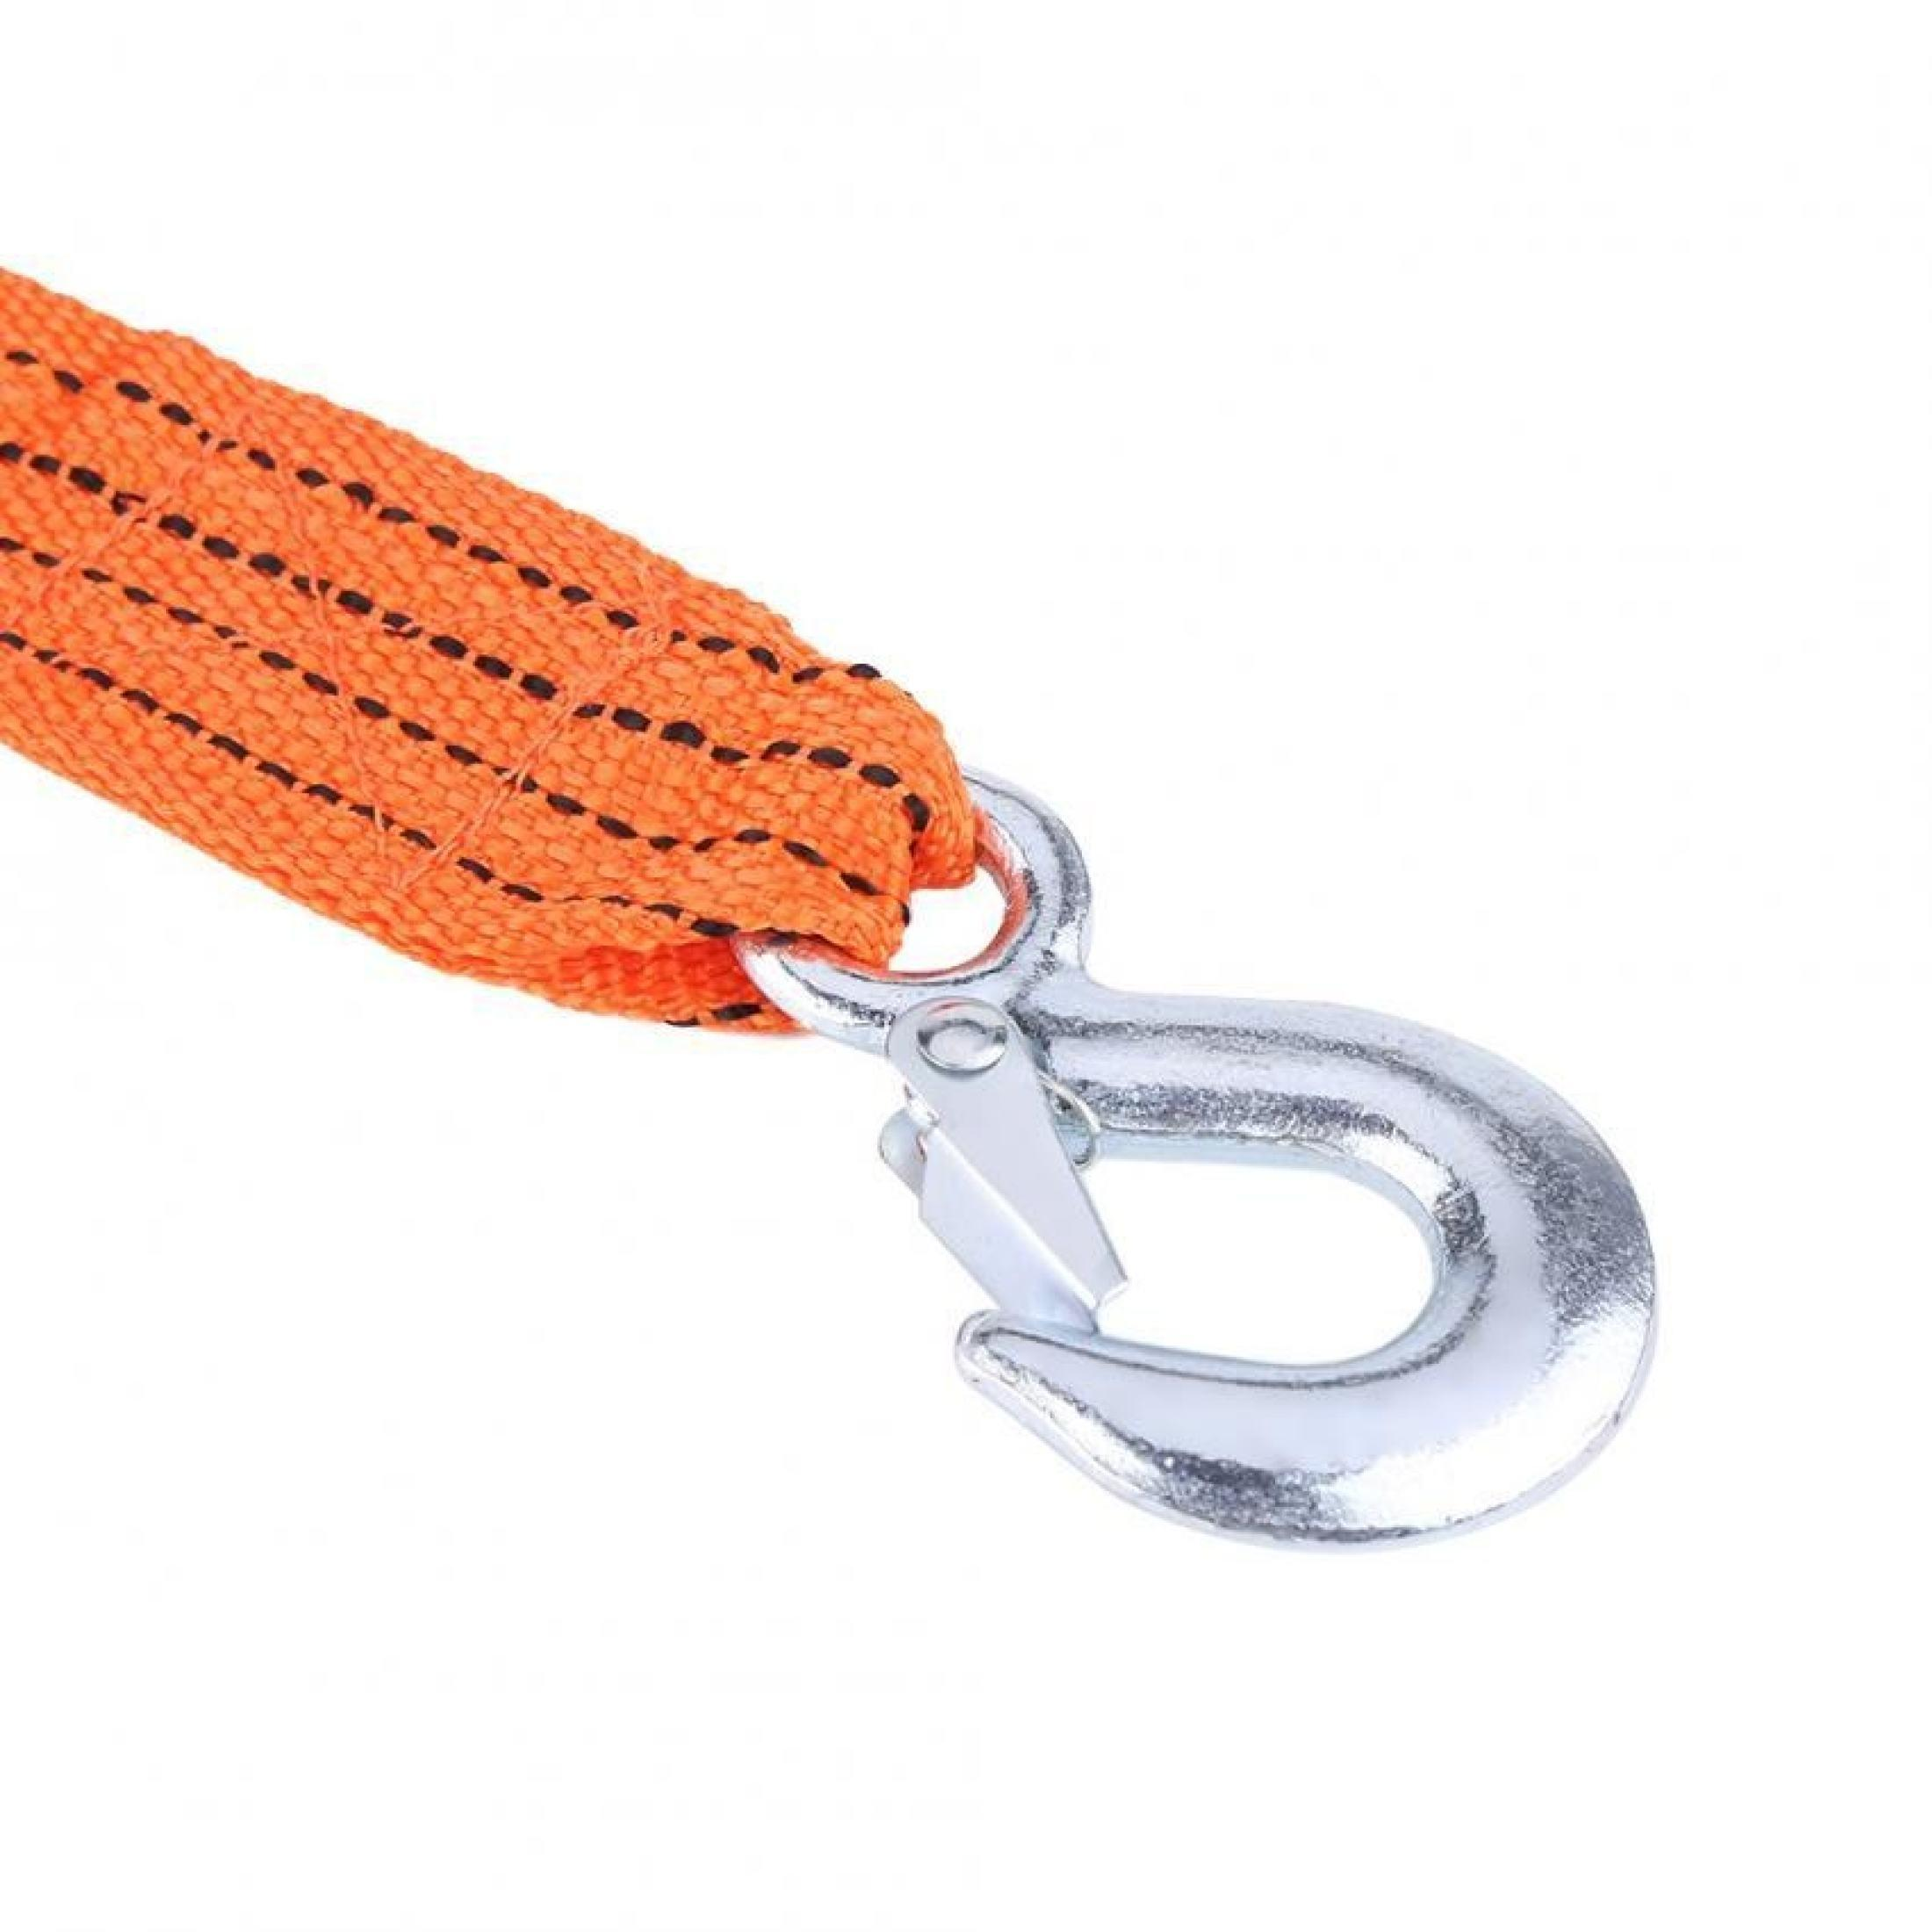 Tow Rope-4 Meter Load 3 Ton Car Trailer Towing Rope Strap Tow Cable with Hooks Emergency Vehicle Tool